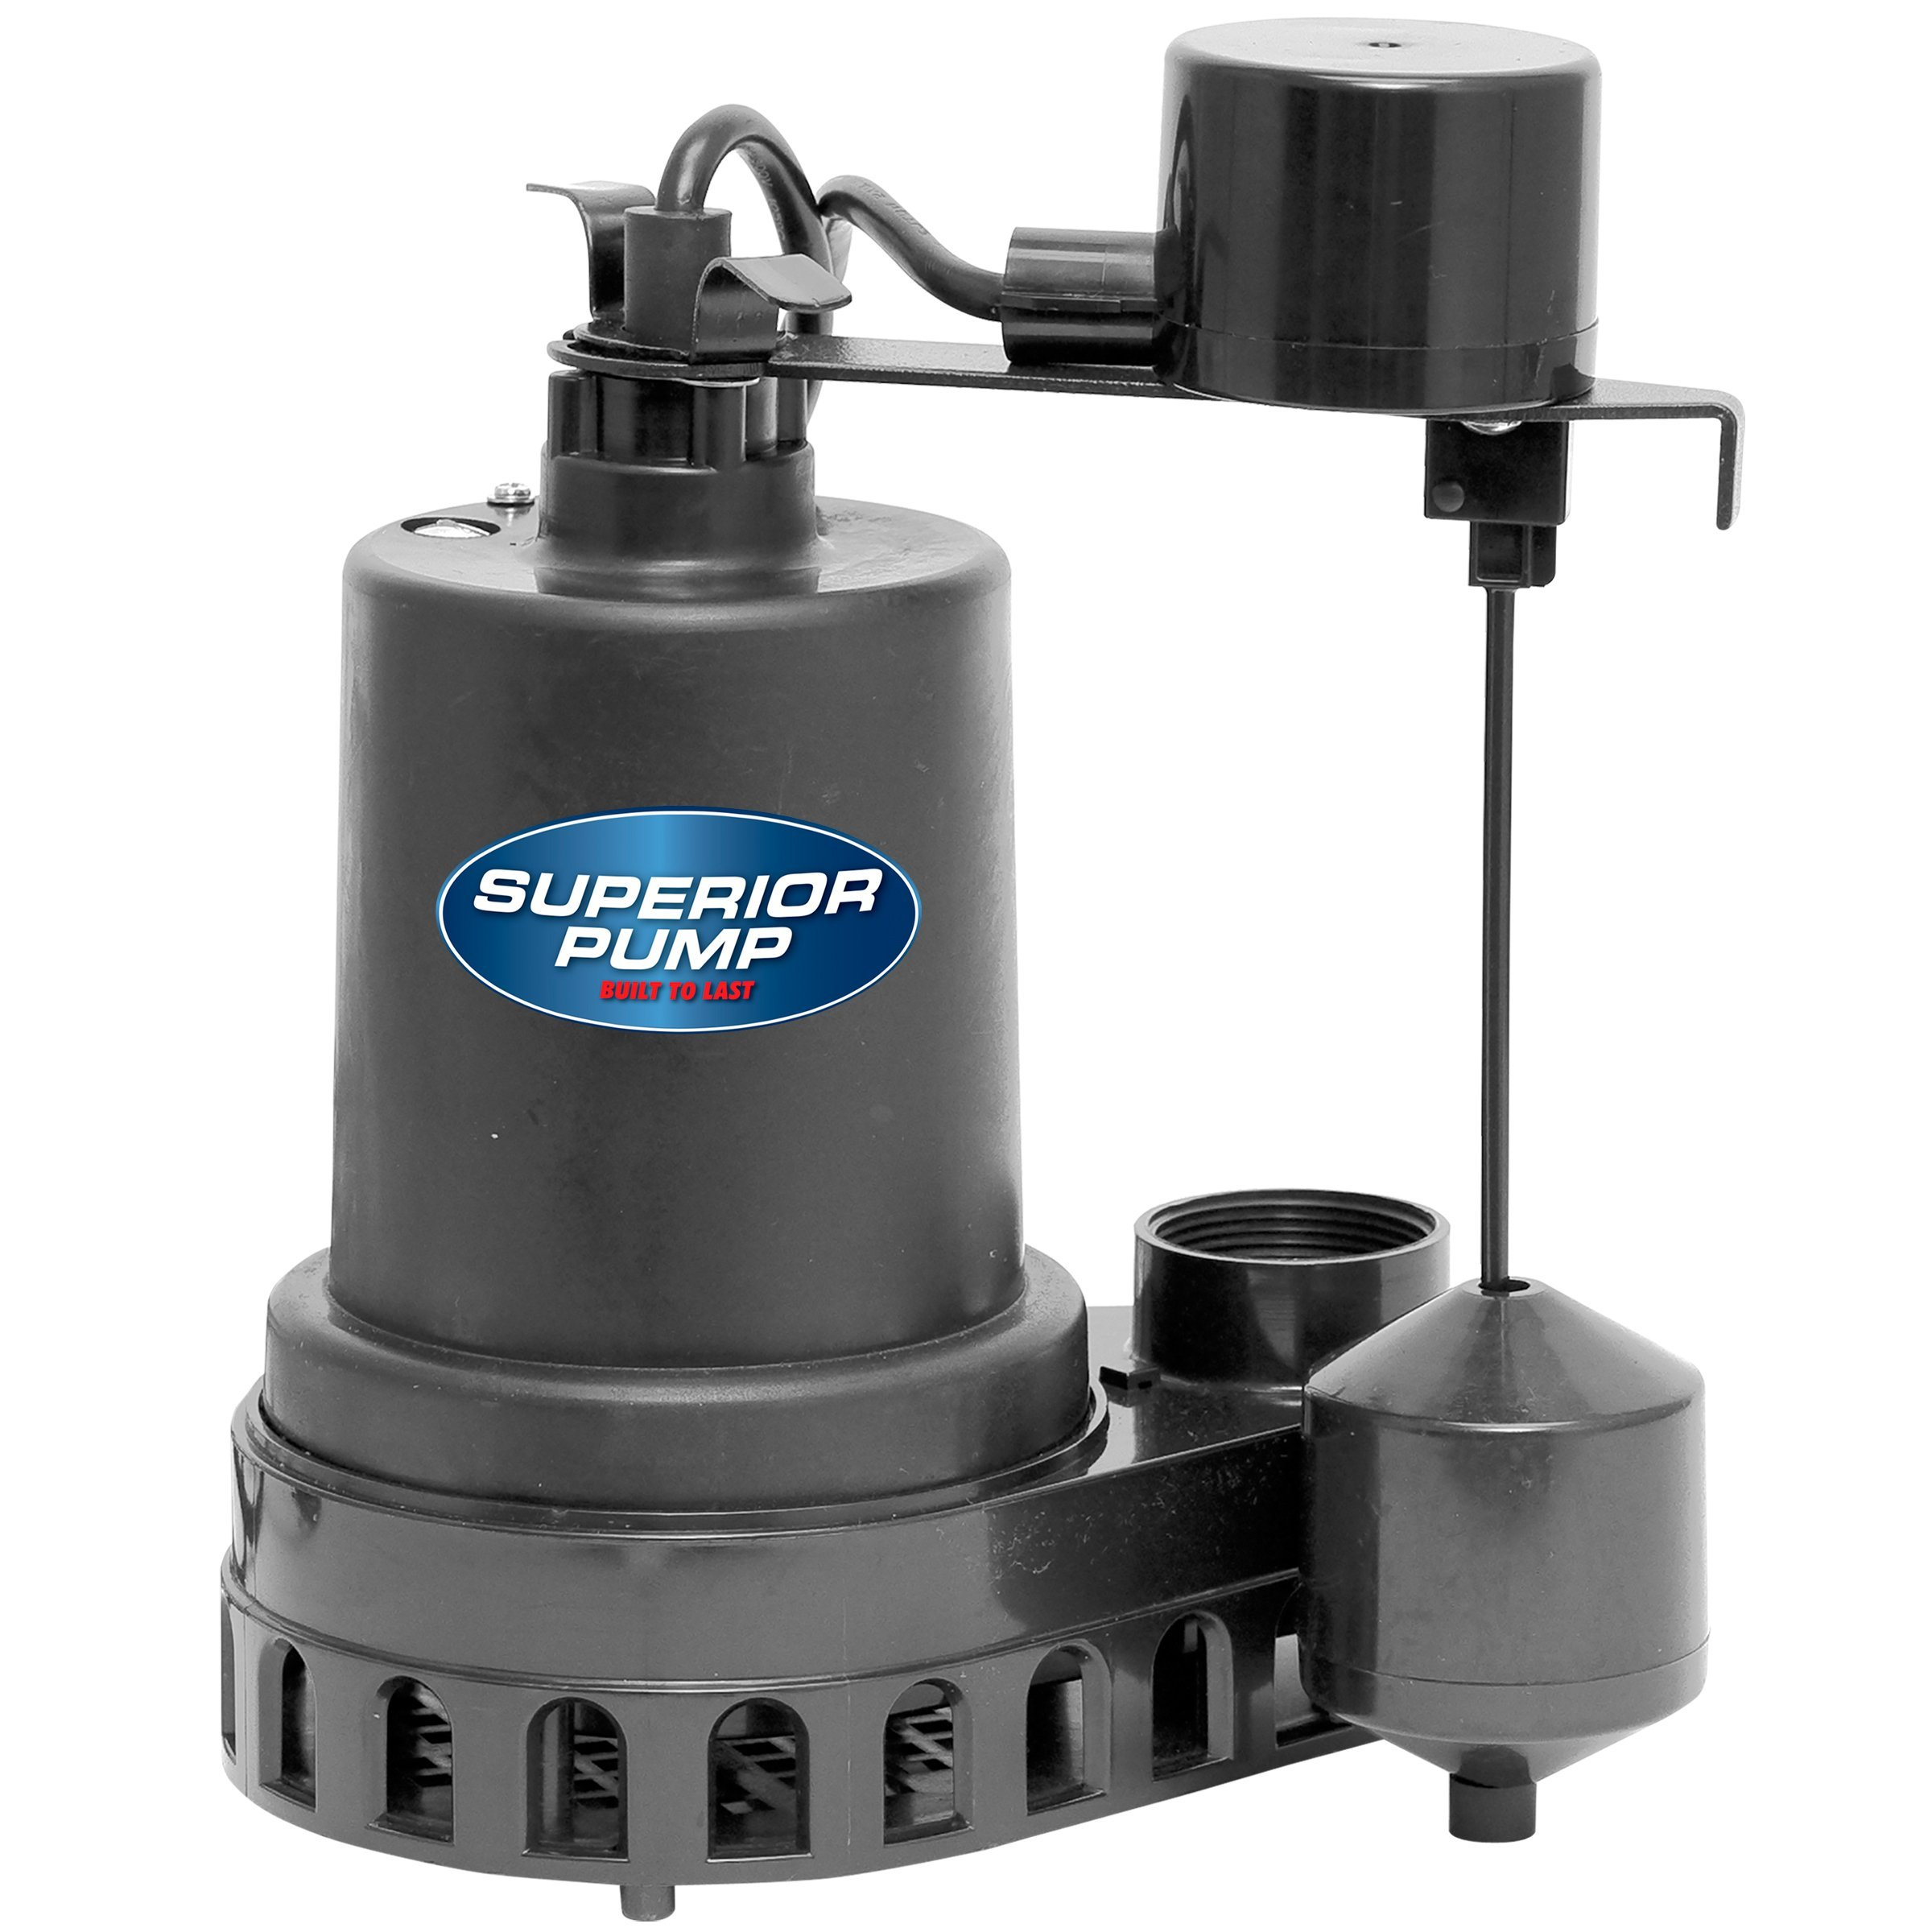 Superior Pump 92572 Thermoplastic Sump Pump with Vertical Float Switch, 1/2 HP by Superior Pump